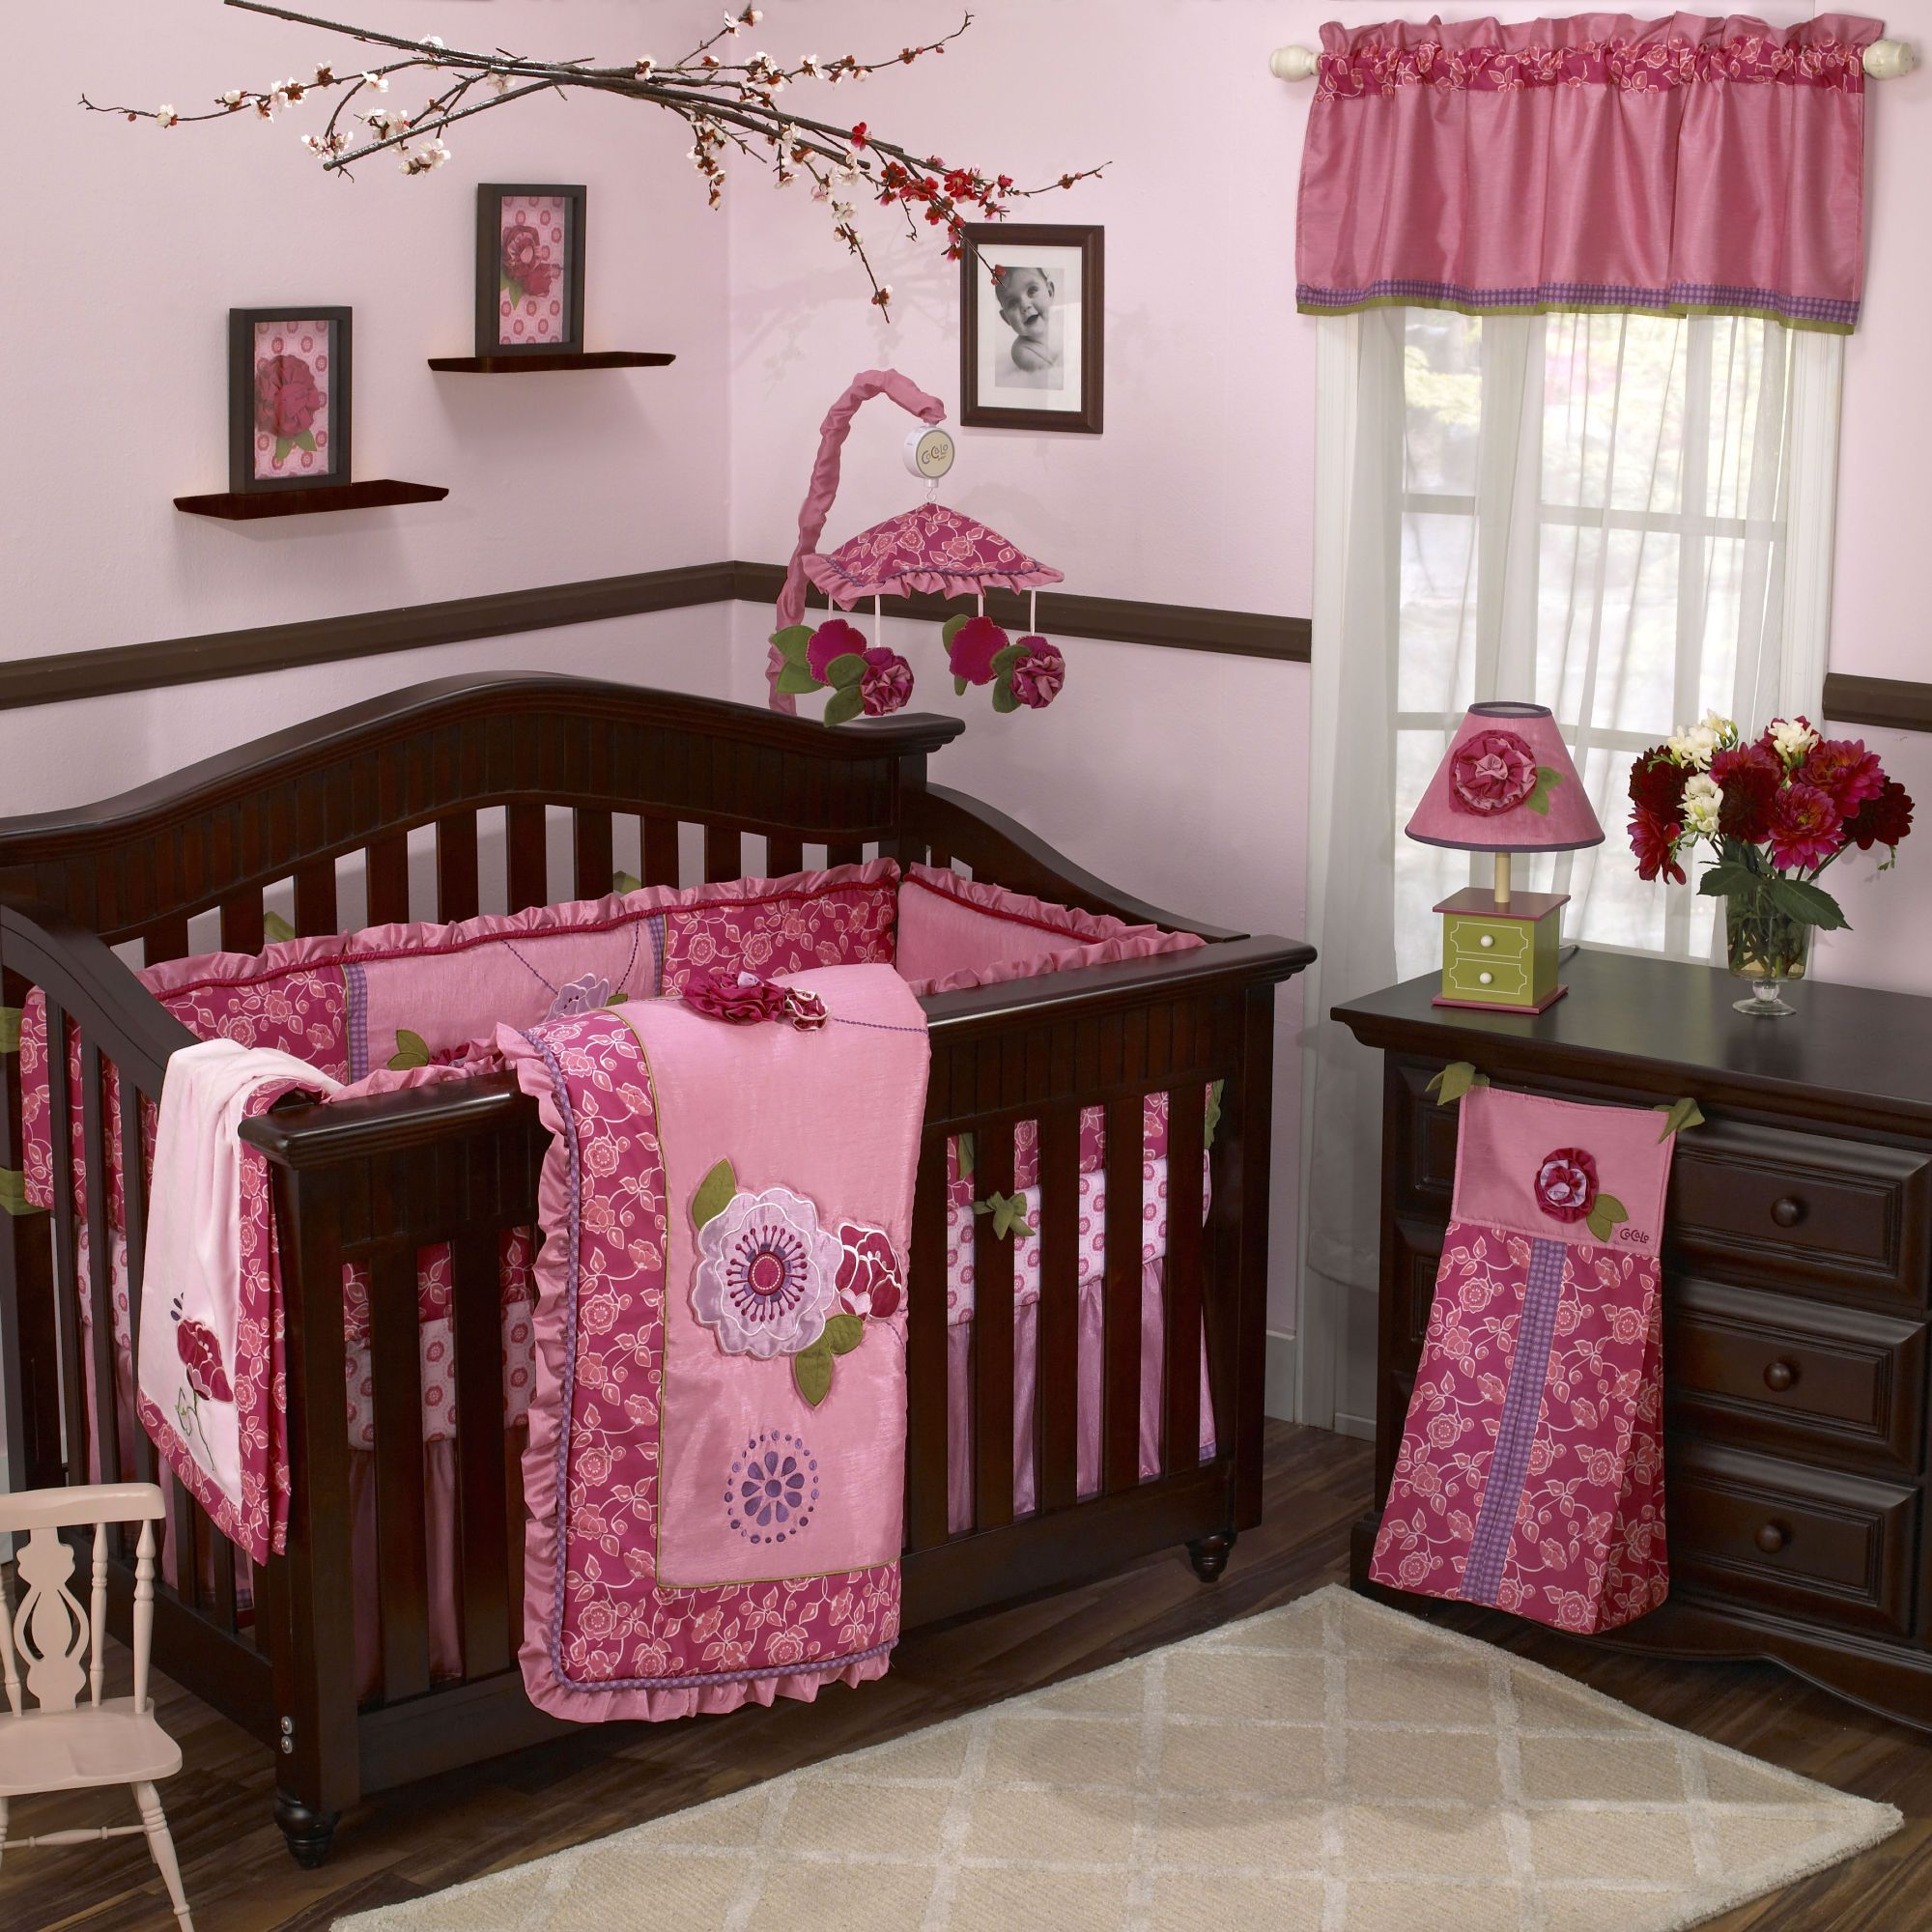 picture perfect: baby girl's room | socialcafe magazine | nursery